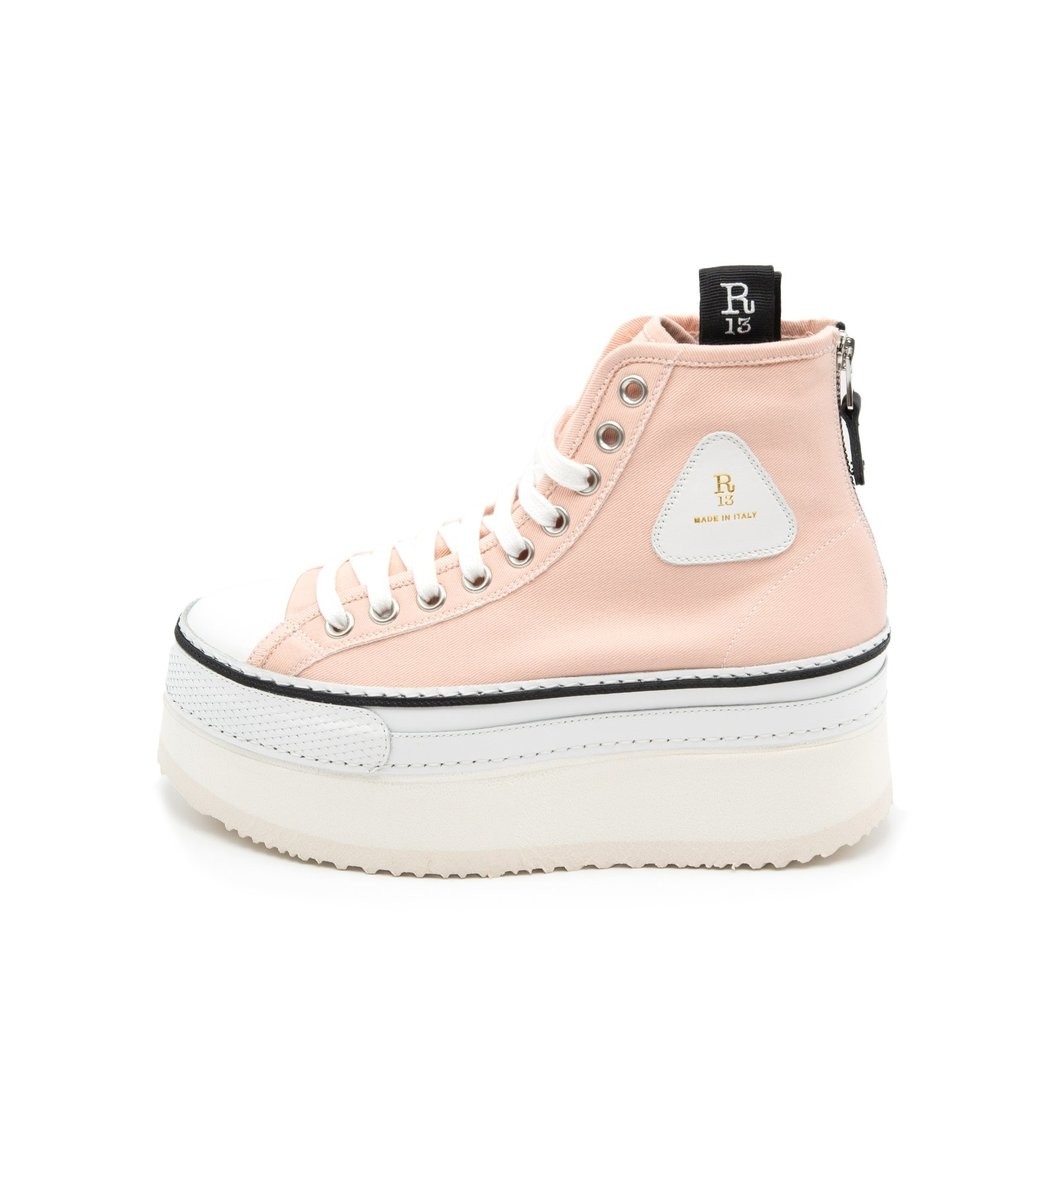 R13 Canvases Platform High Top Sneaker in Pink